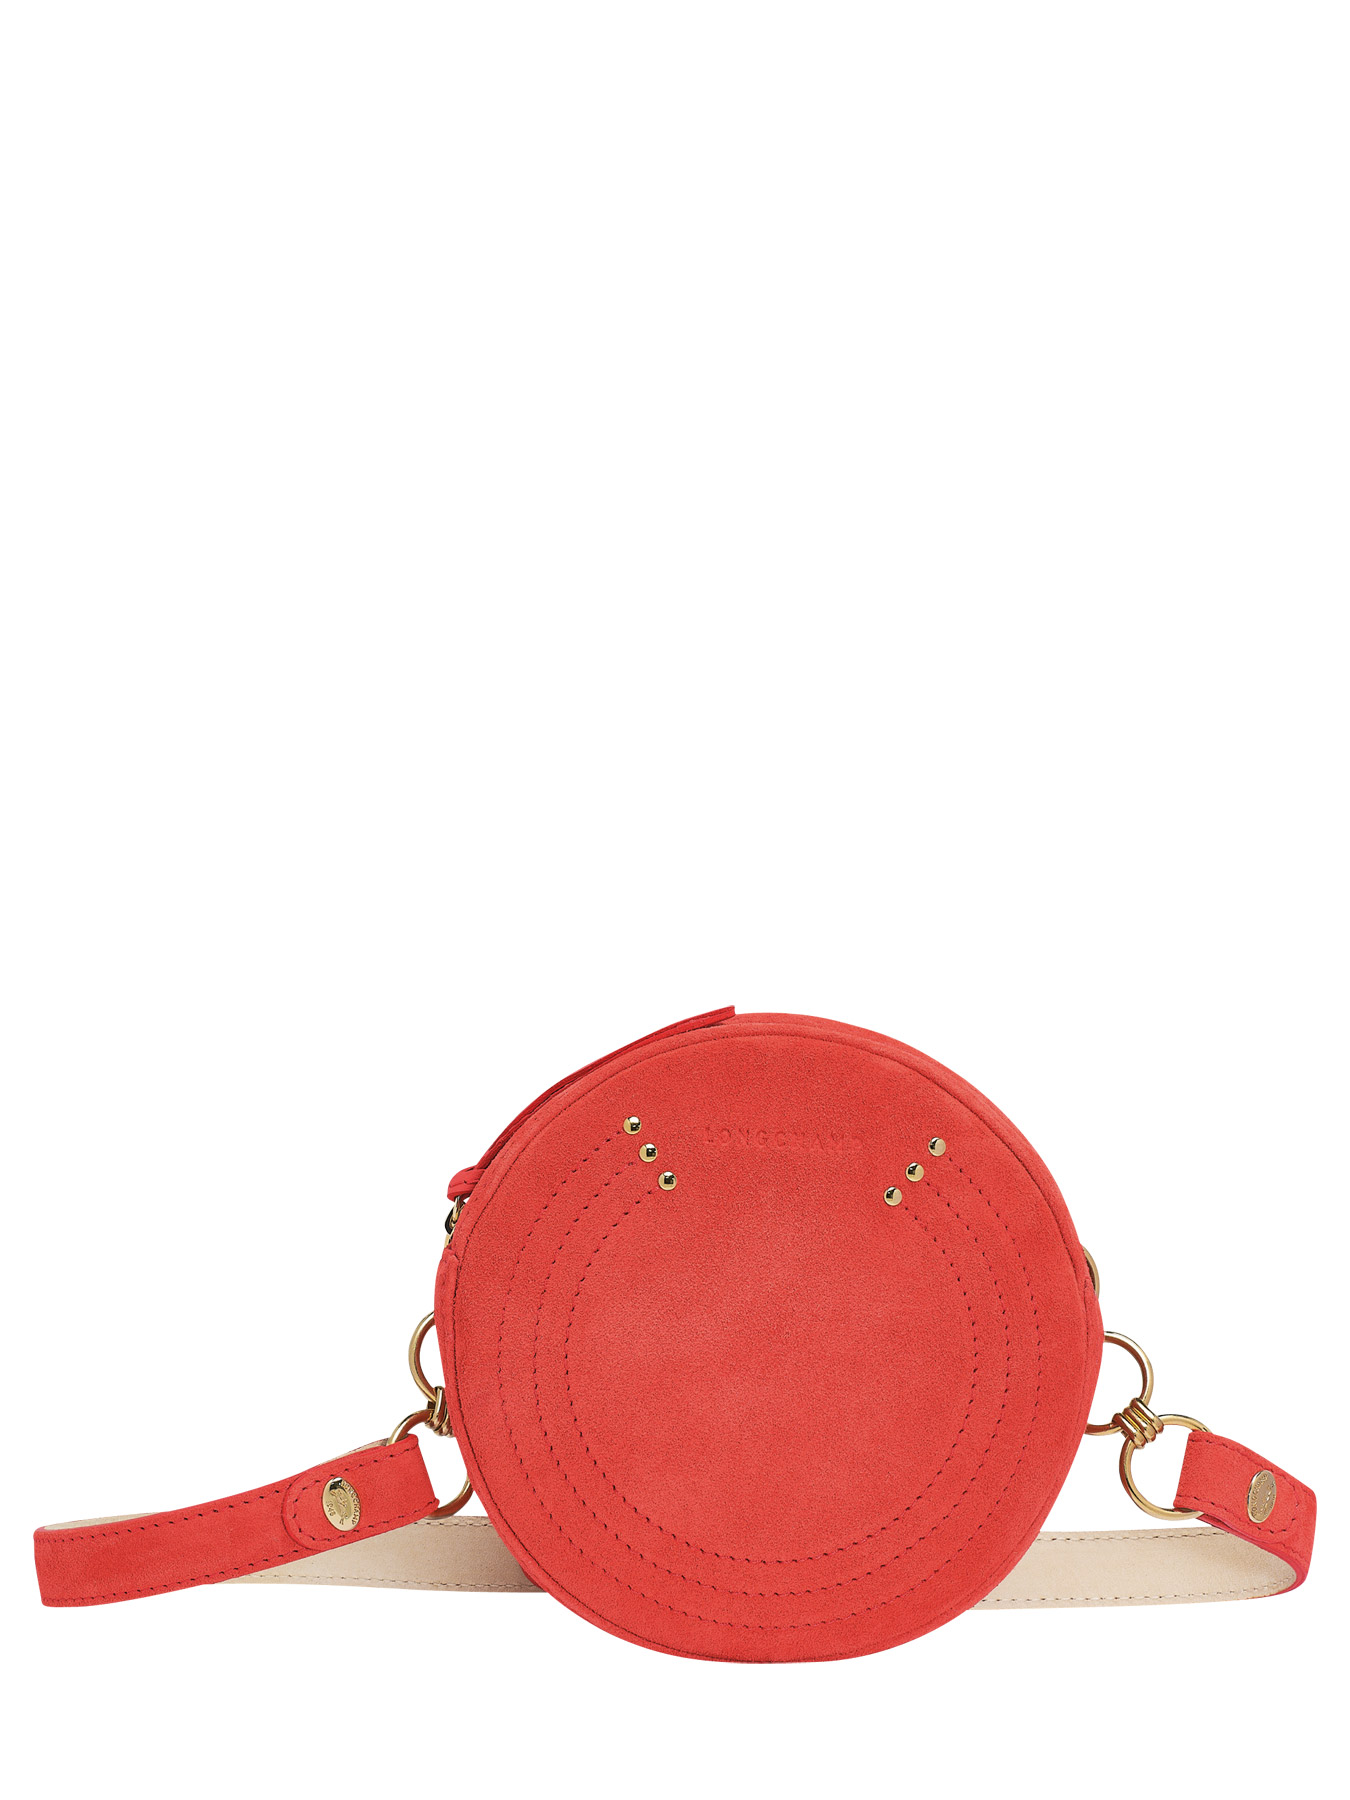 Shopping > banane longchamps cuir, Up to 62% OFF